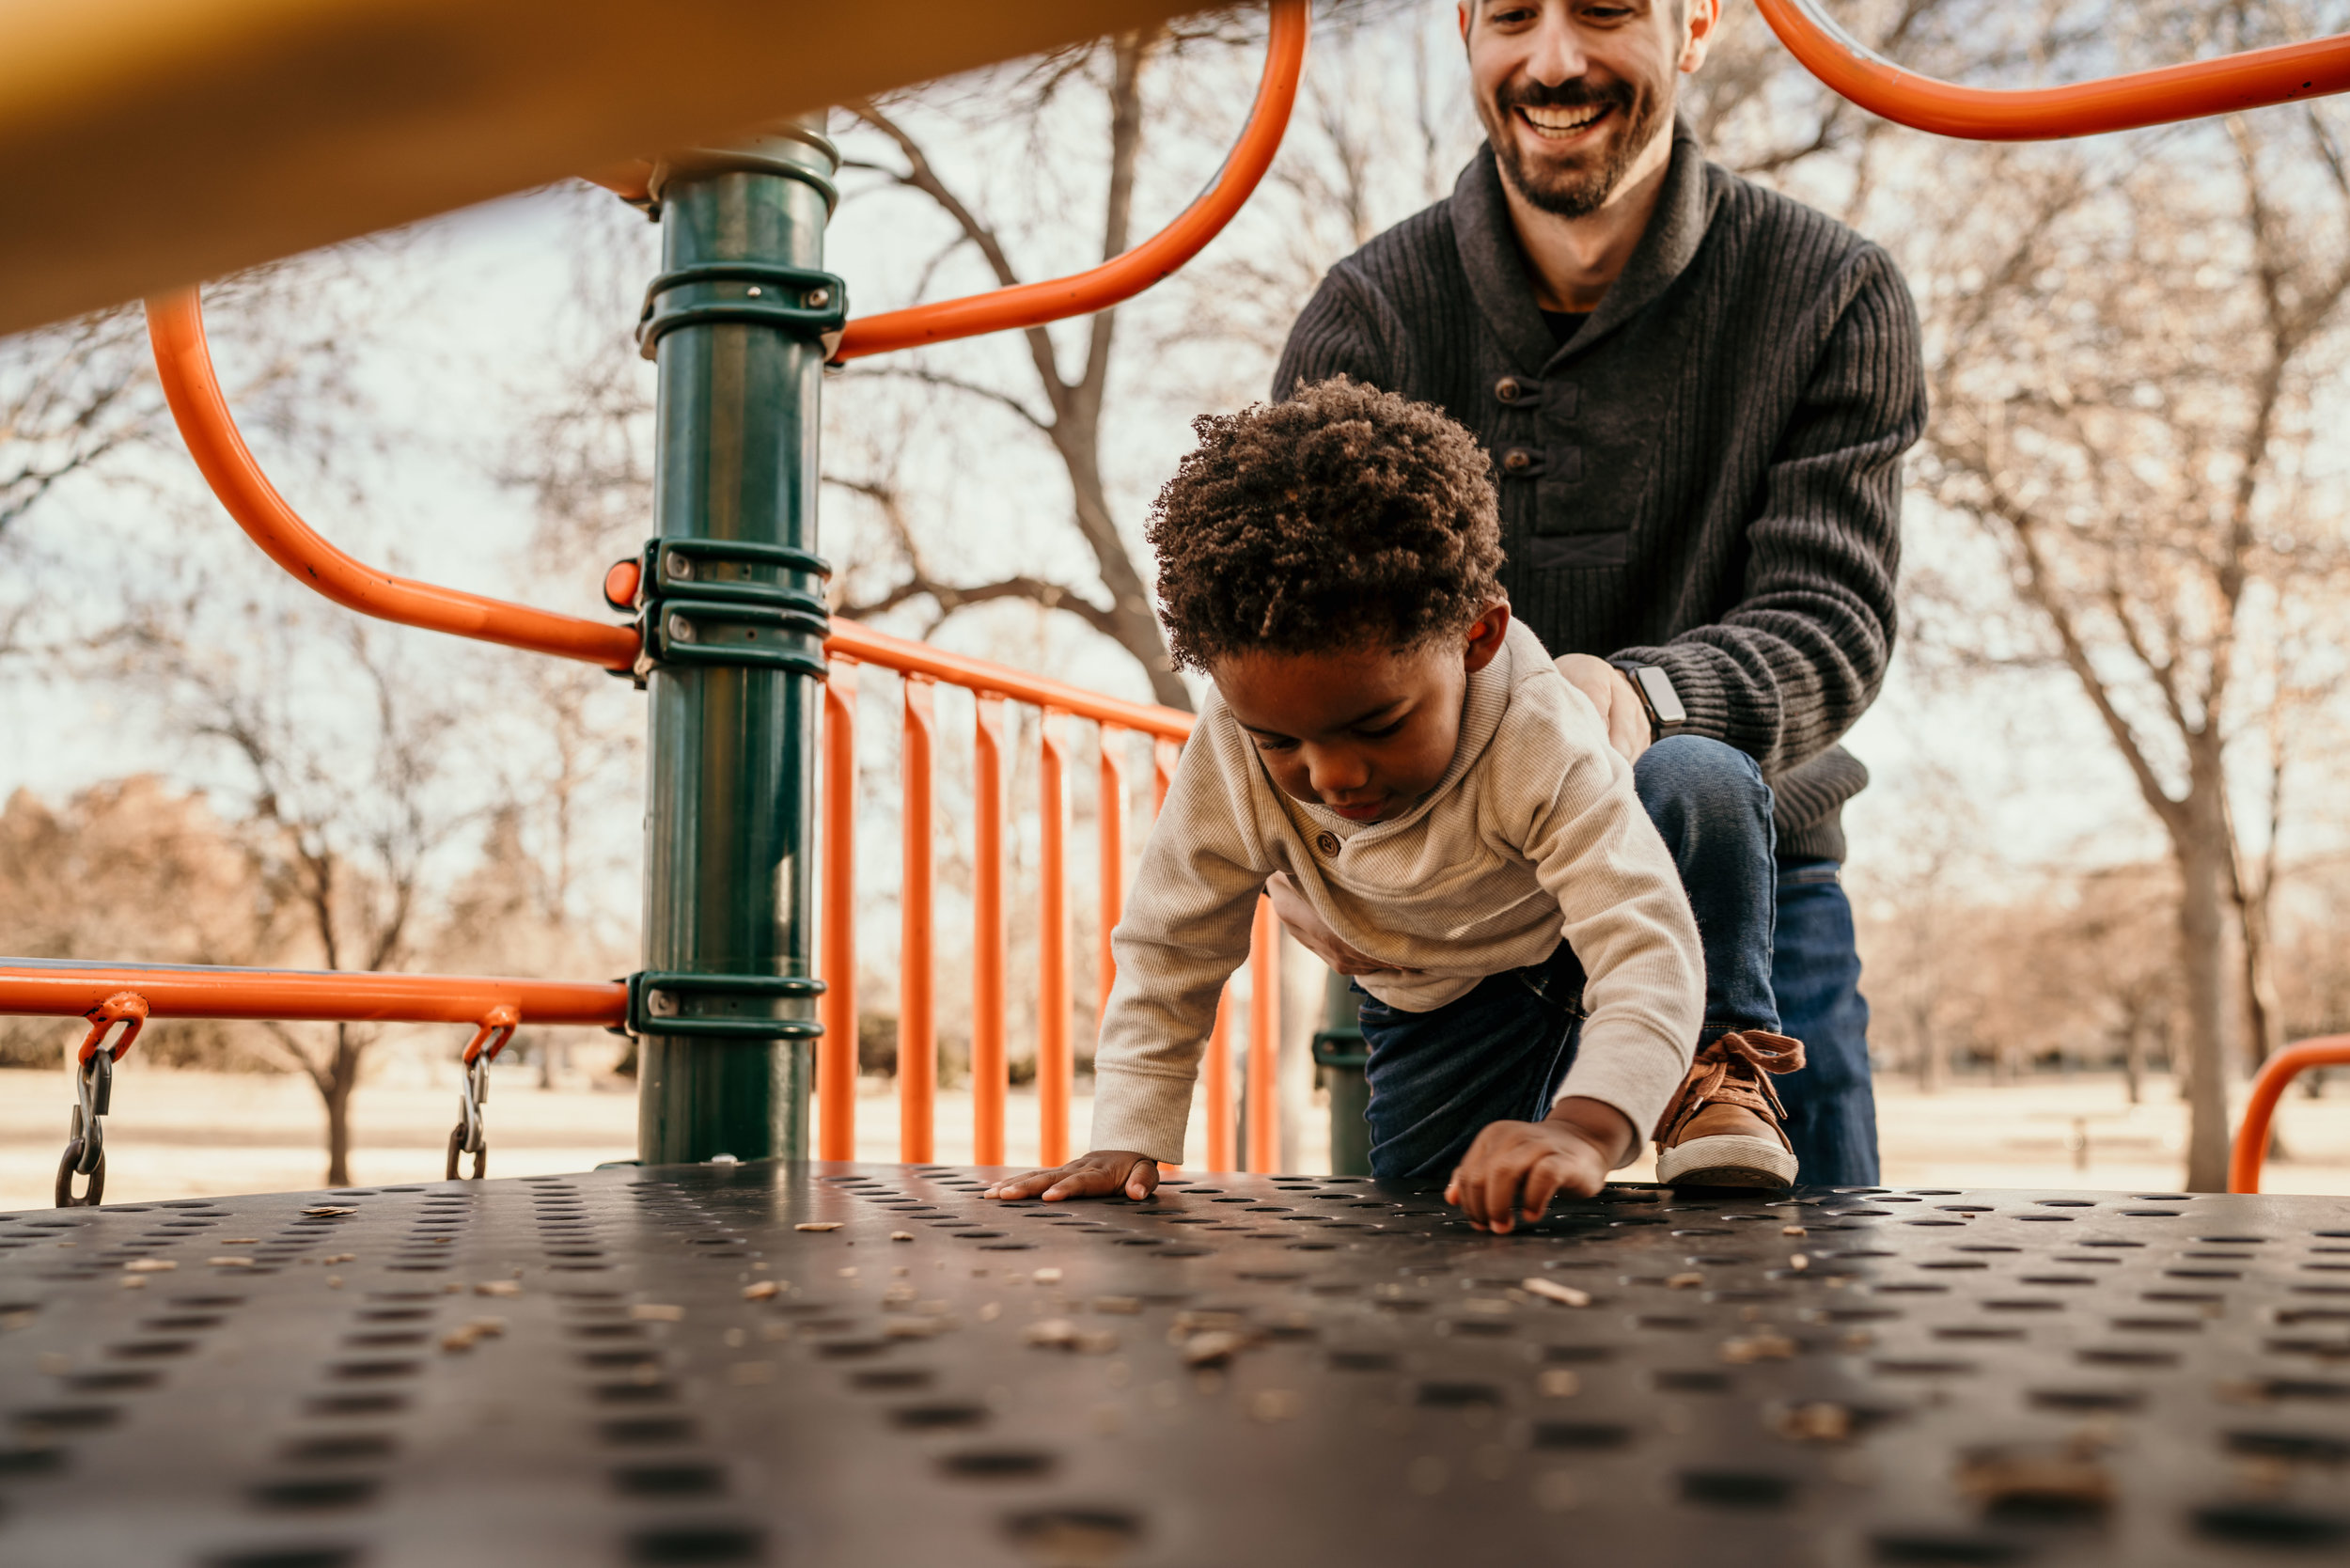 denver family photographers at city park kid on playground